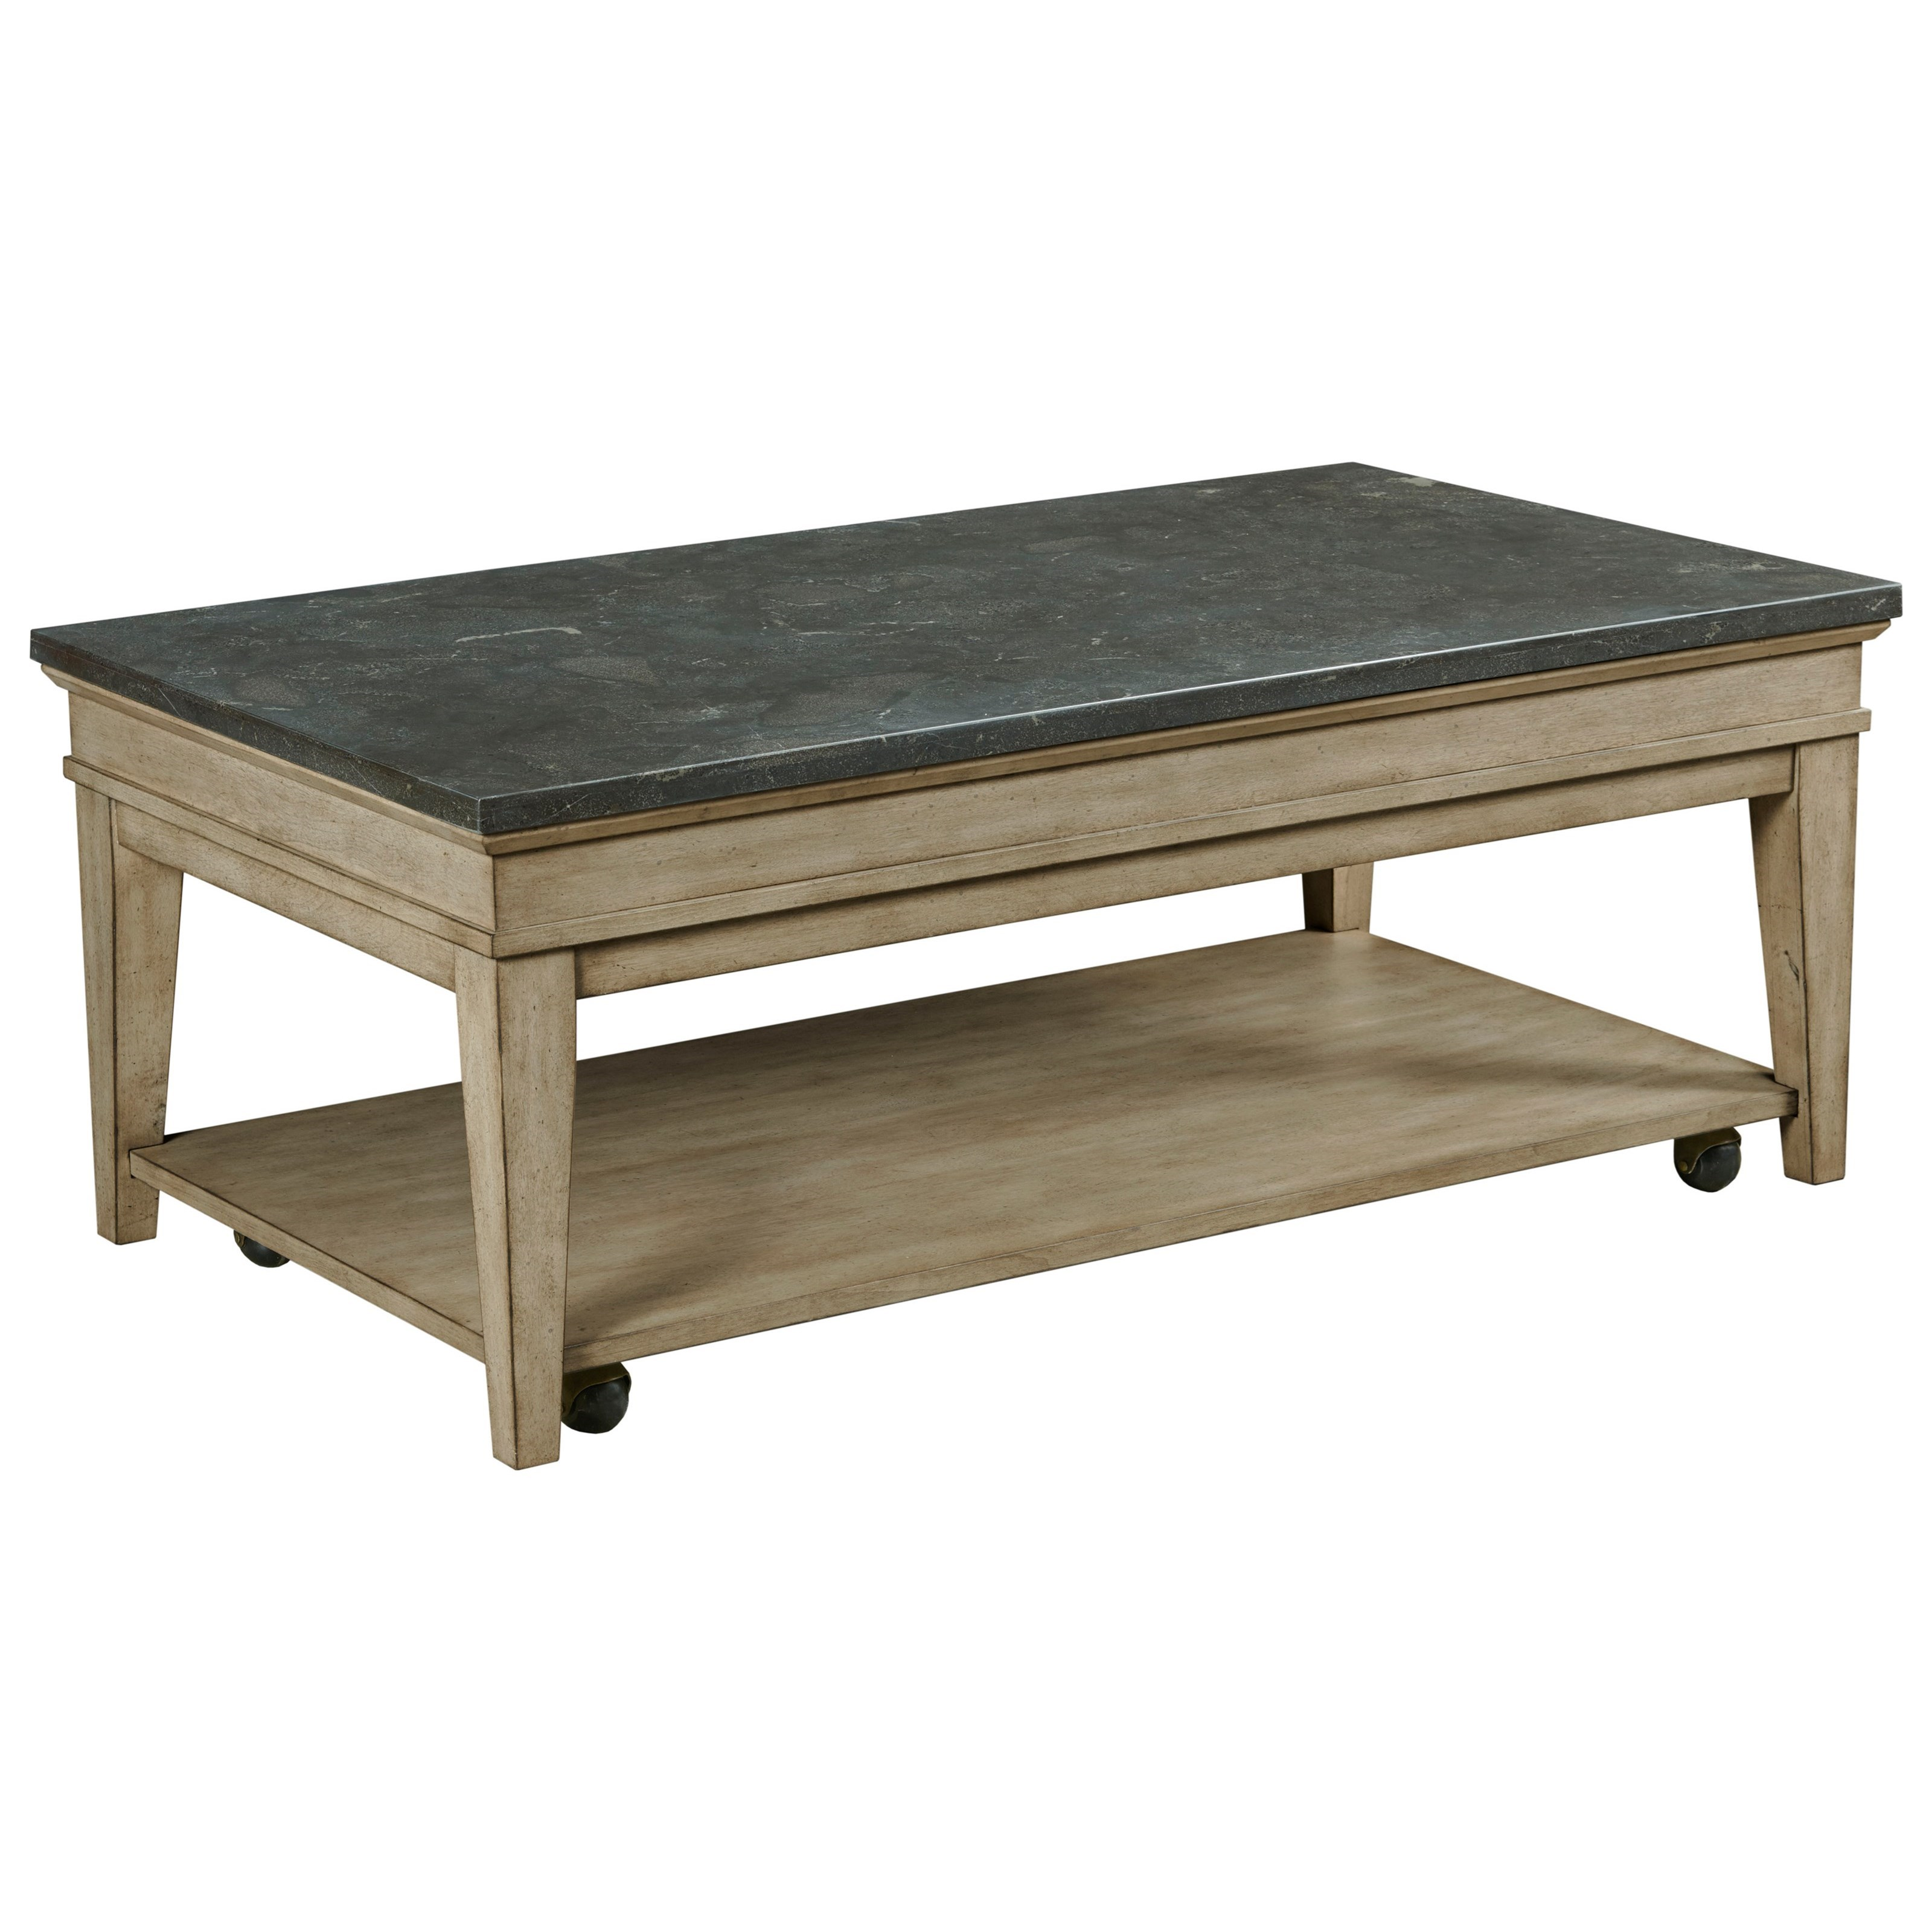 Riverstone Rectangular Cocktail Table by England at Sadler's Home Furnishings